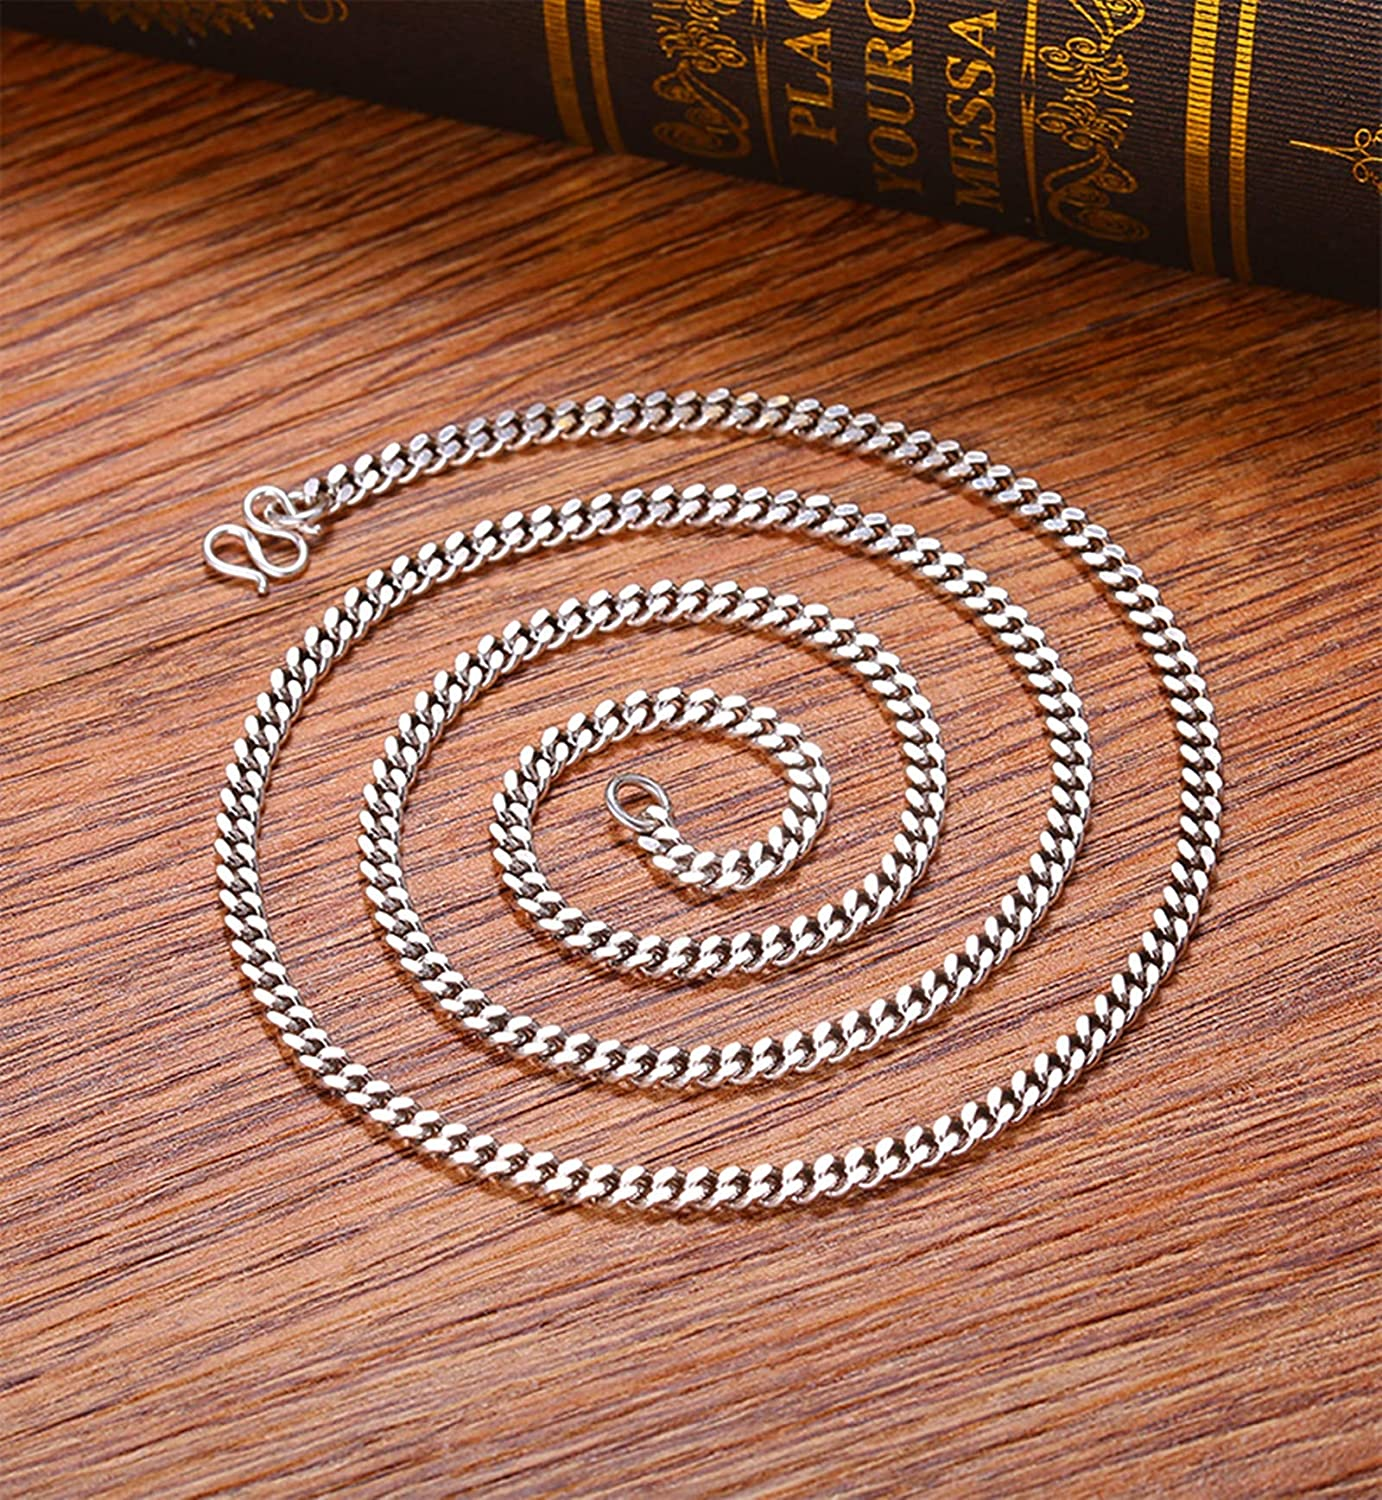 Epinki 925 Sterling Silver Curb Necklace Chain 4MM Necklace for Men 20-28 Inch